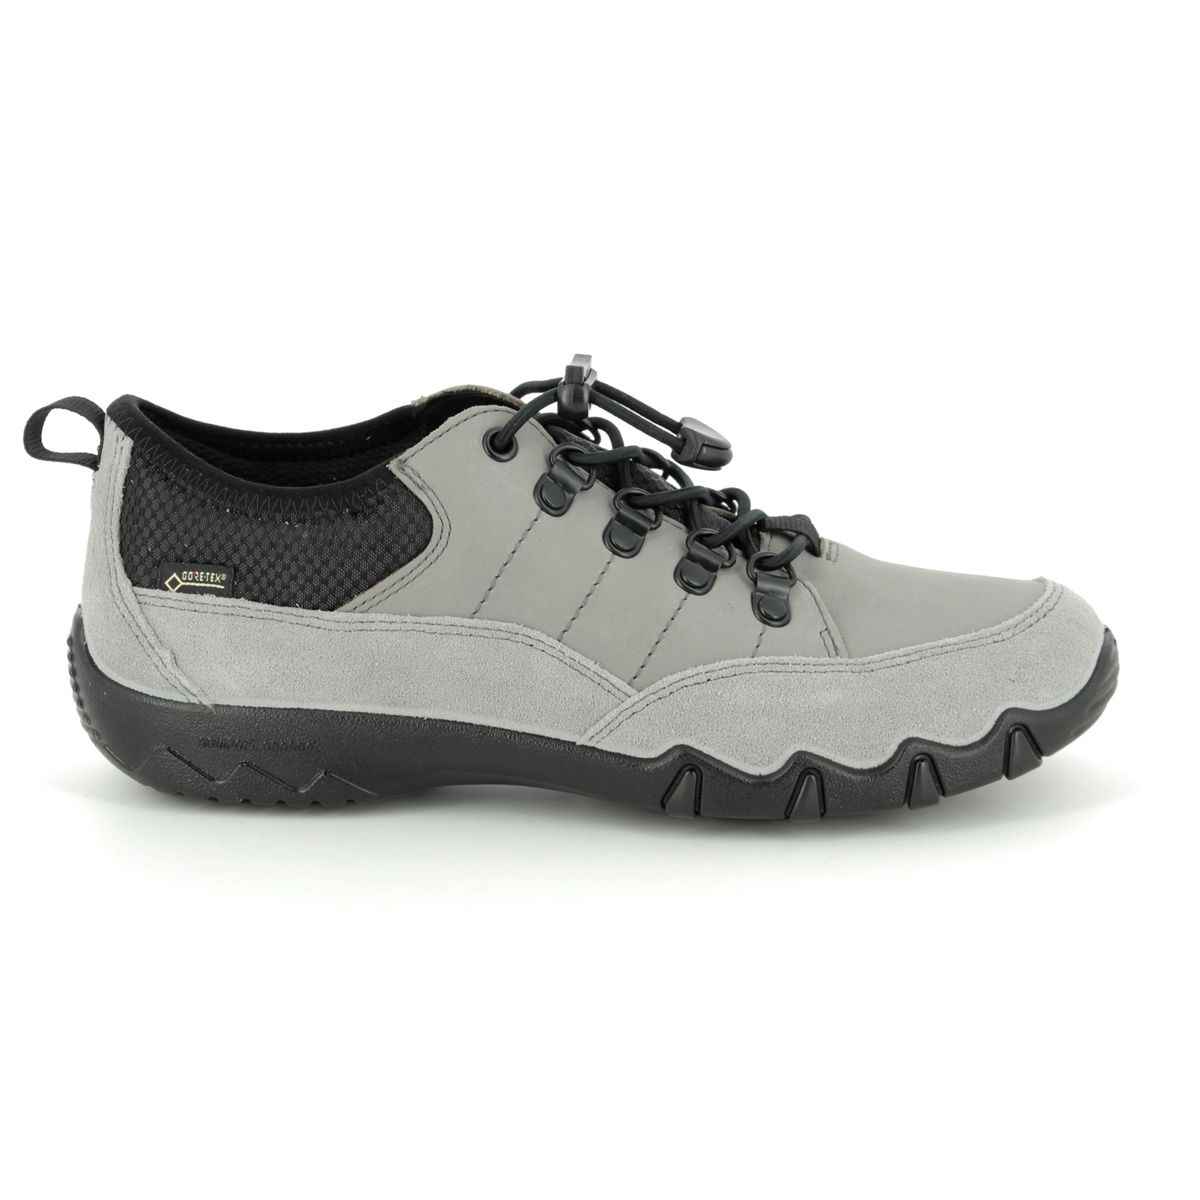 b1ace95785d 9113/00 Rydal Gtx E Fit at Begg Shoes & Bags